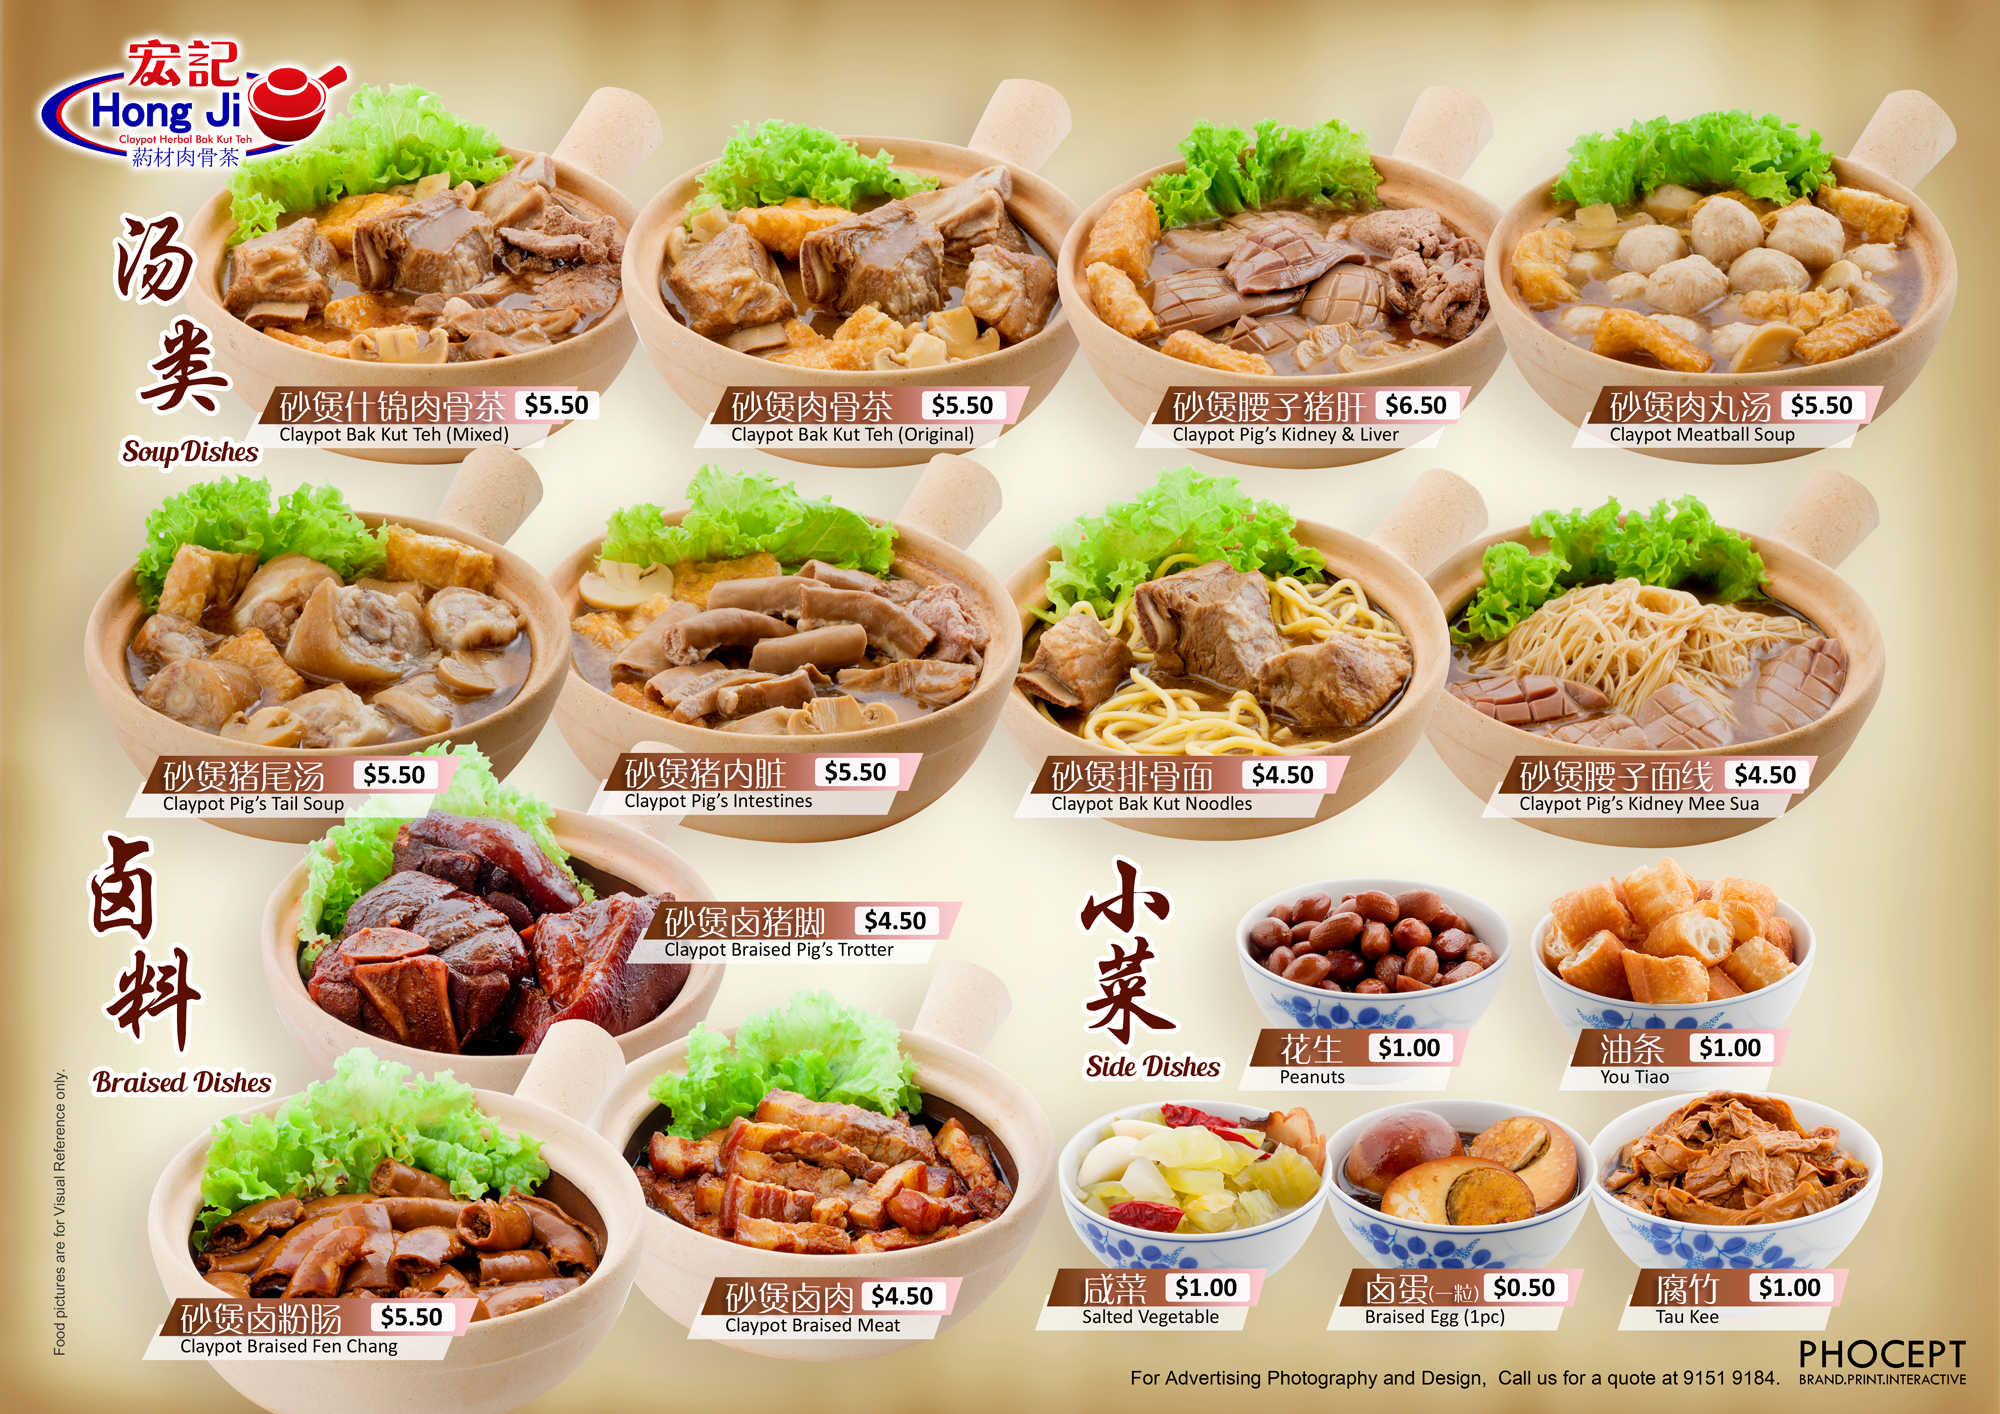 Singapore food Signage Provider for Hongji Bak Kut Teh Menu Board by phocept Team